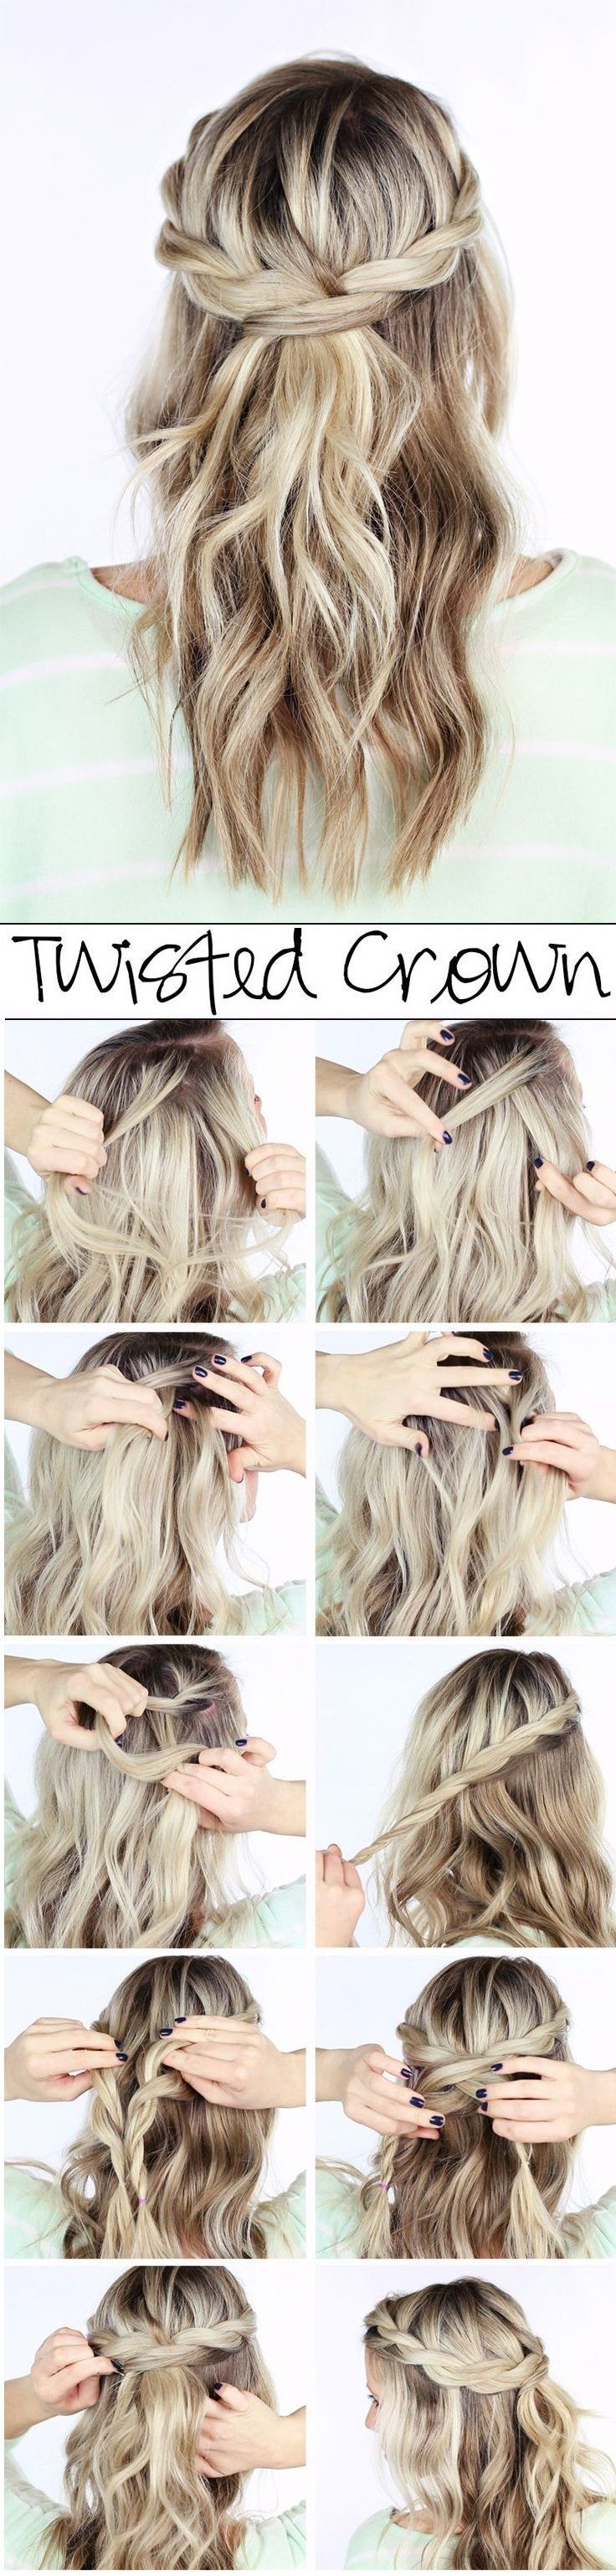 51 best Haar Hair images on Pinterest